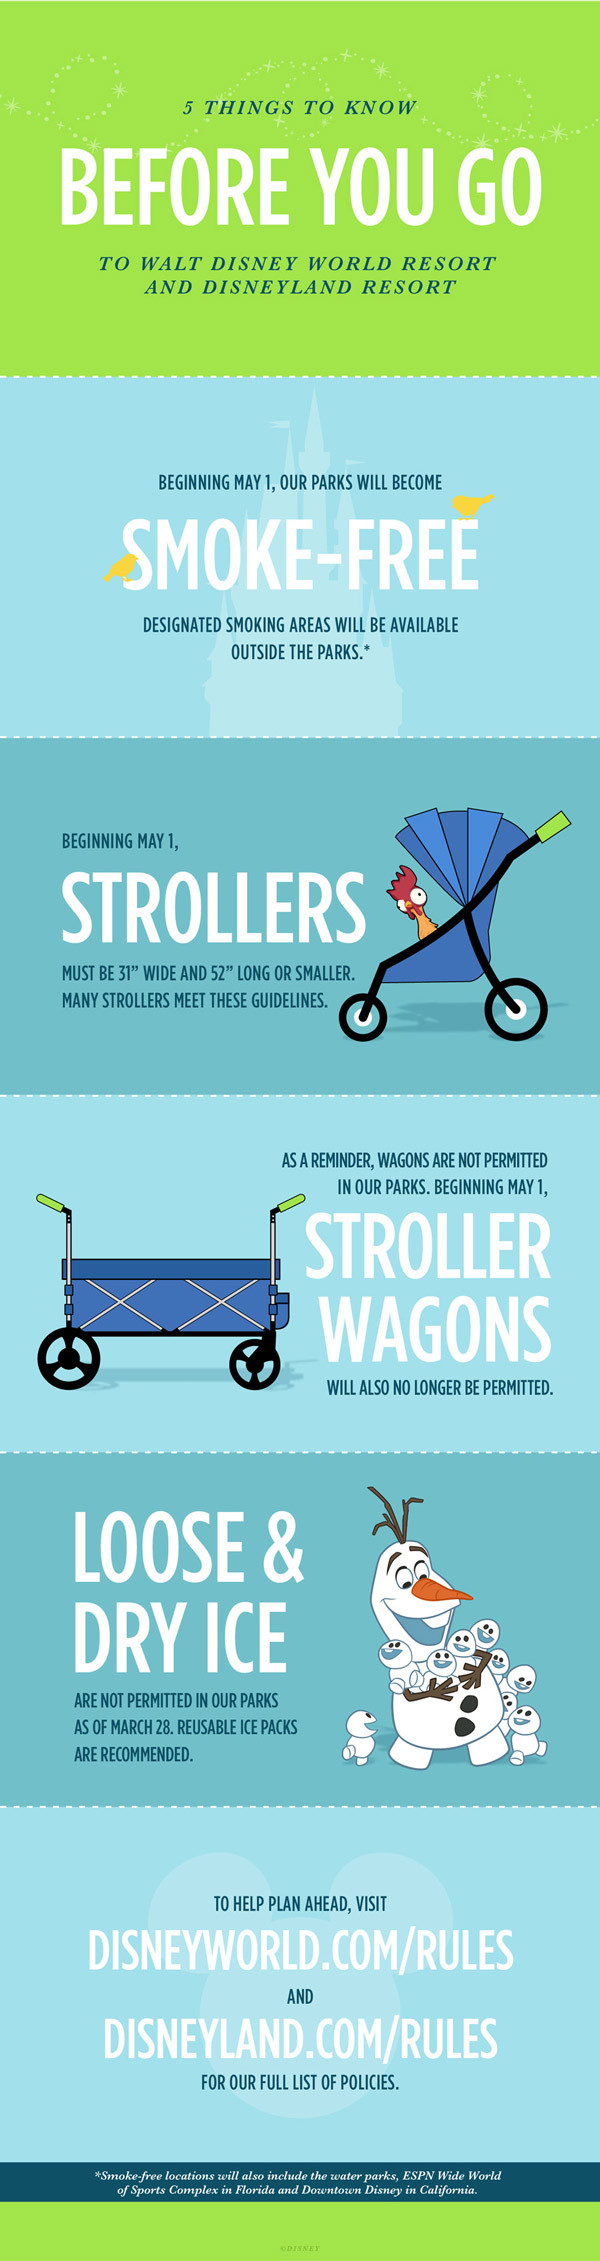 Know Before You Go – Stroller Restrictions & Smoking, Wagons, & Loose Ice Now Banned at Disney Parks